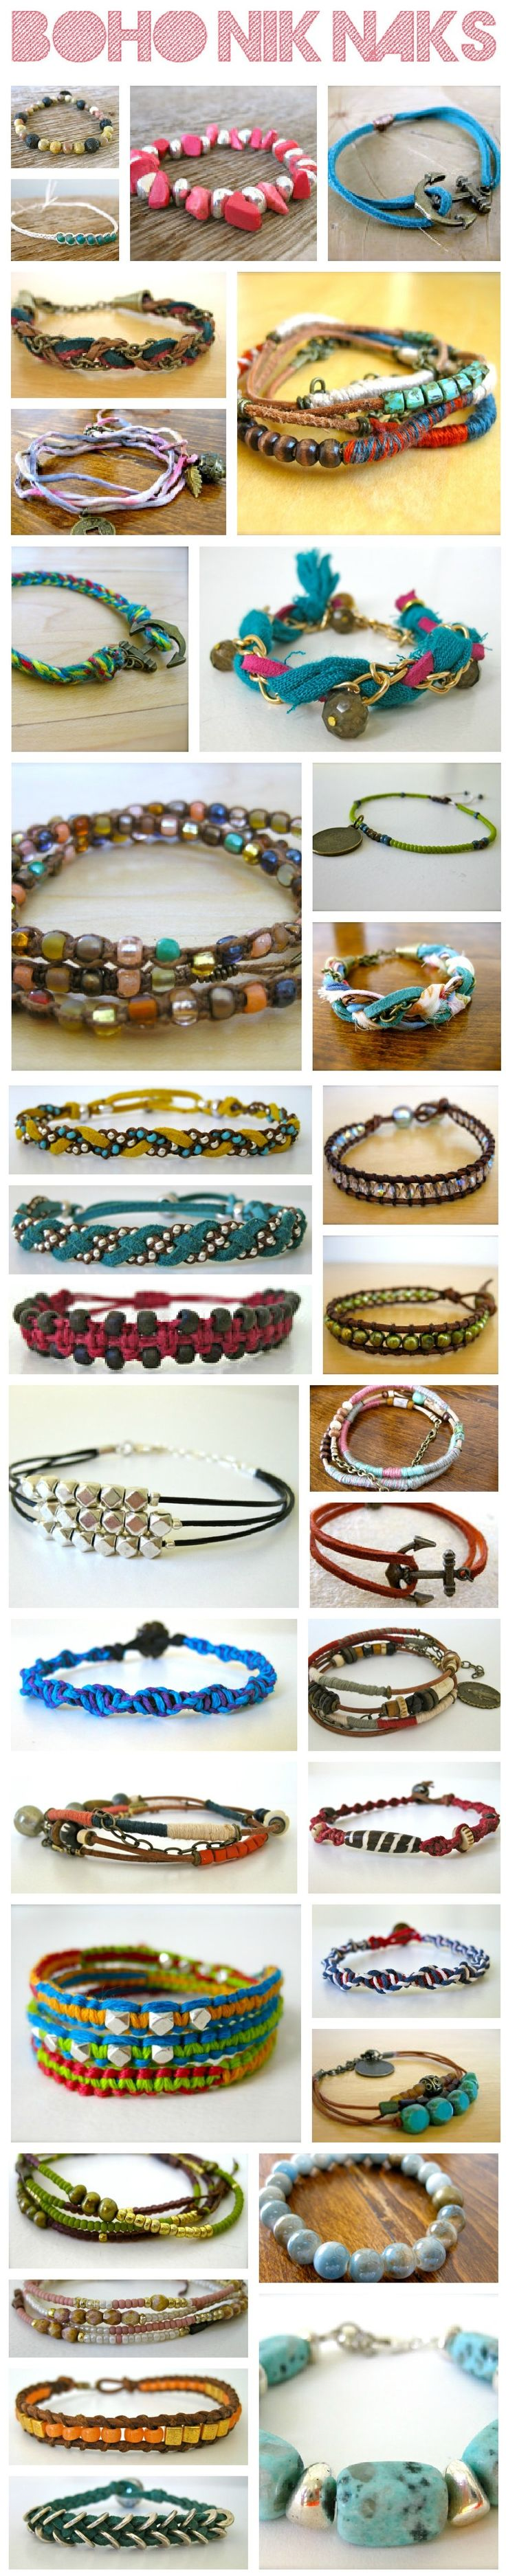 Boho Nik Naks! So cute and affordable! :)  http://www.etsy.com/shop/bohoNikNaks: Camping Craft, 926 4 718 Pixels, Fun Ideas, Bijou, Things, 600 3 057 Pixels, Craft Ideas, Bracelet Ideas